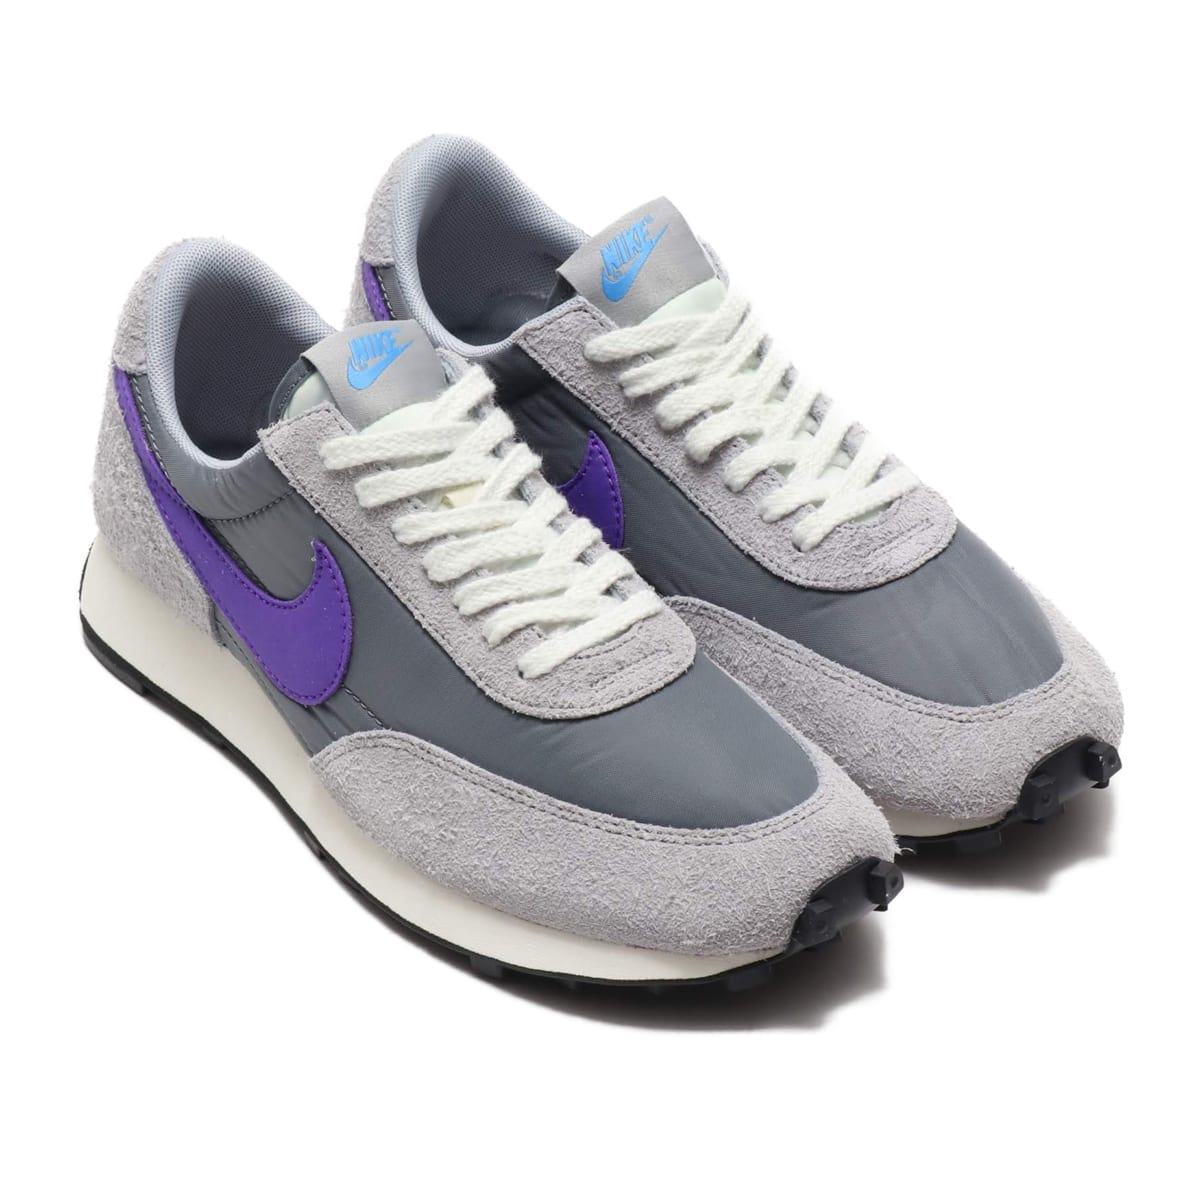 NIKE DBREAK SP COOL GREY/HYPER GRAPE-WOLF GREY 19SU-S_photo_large